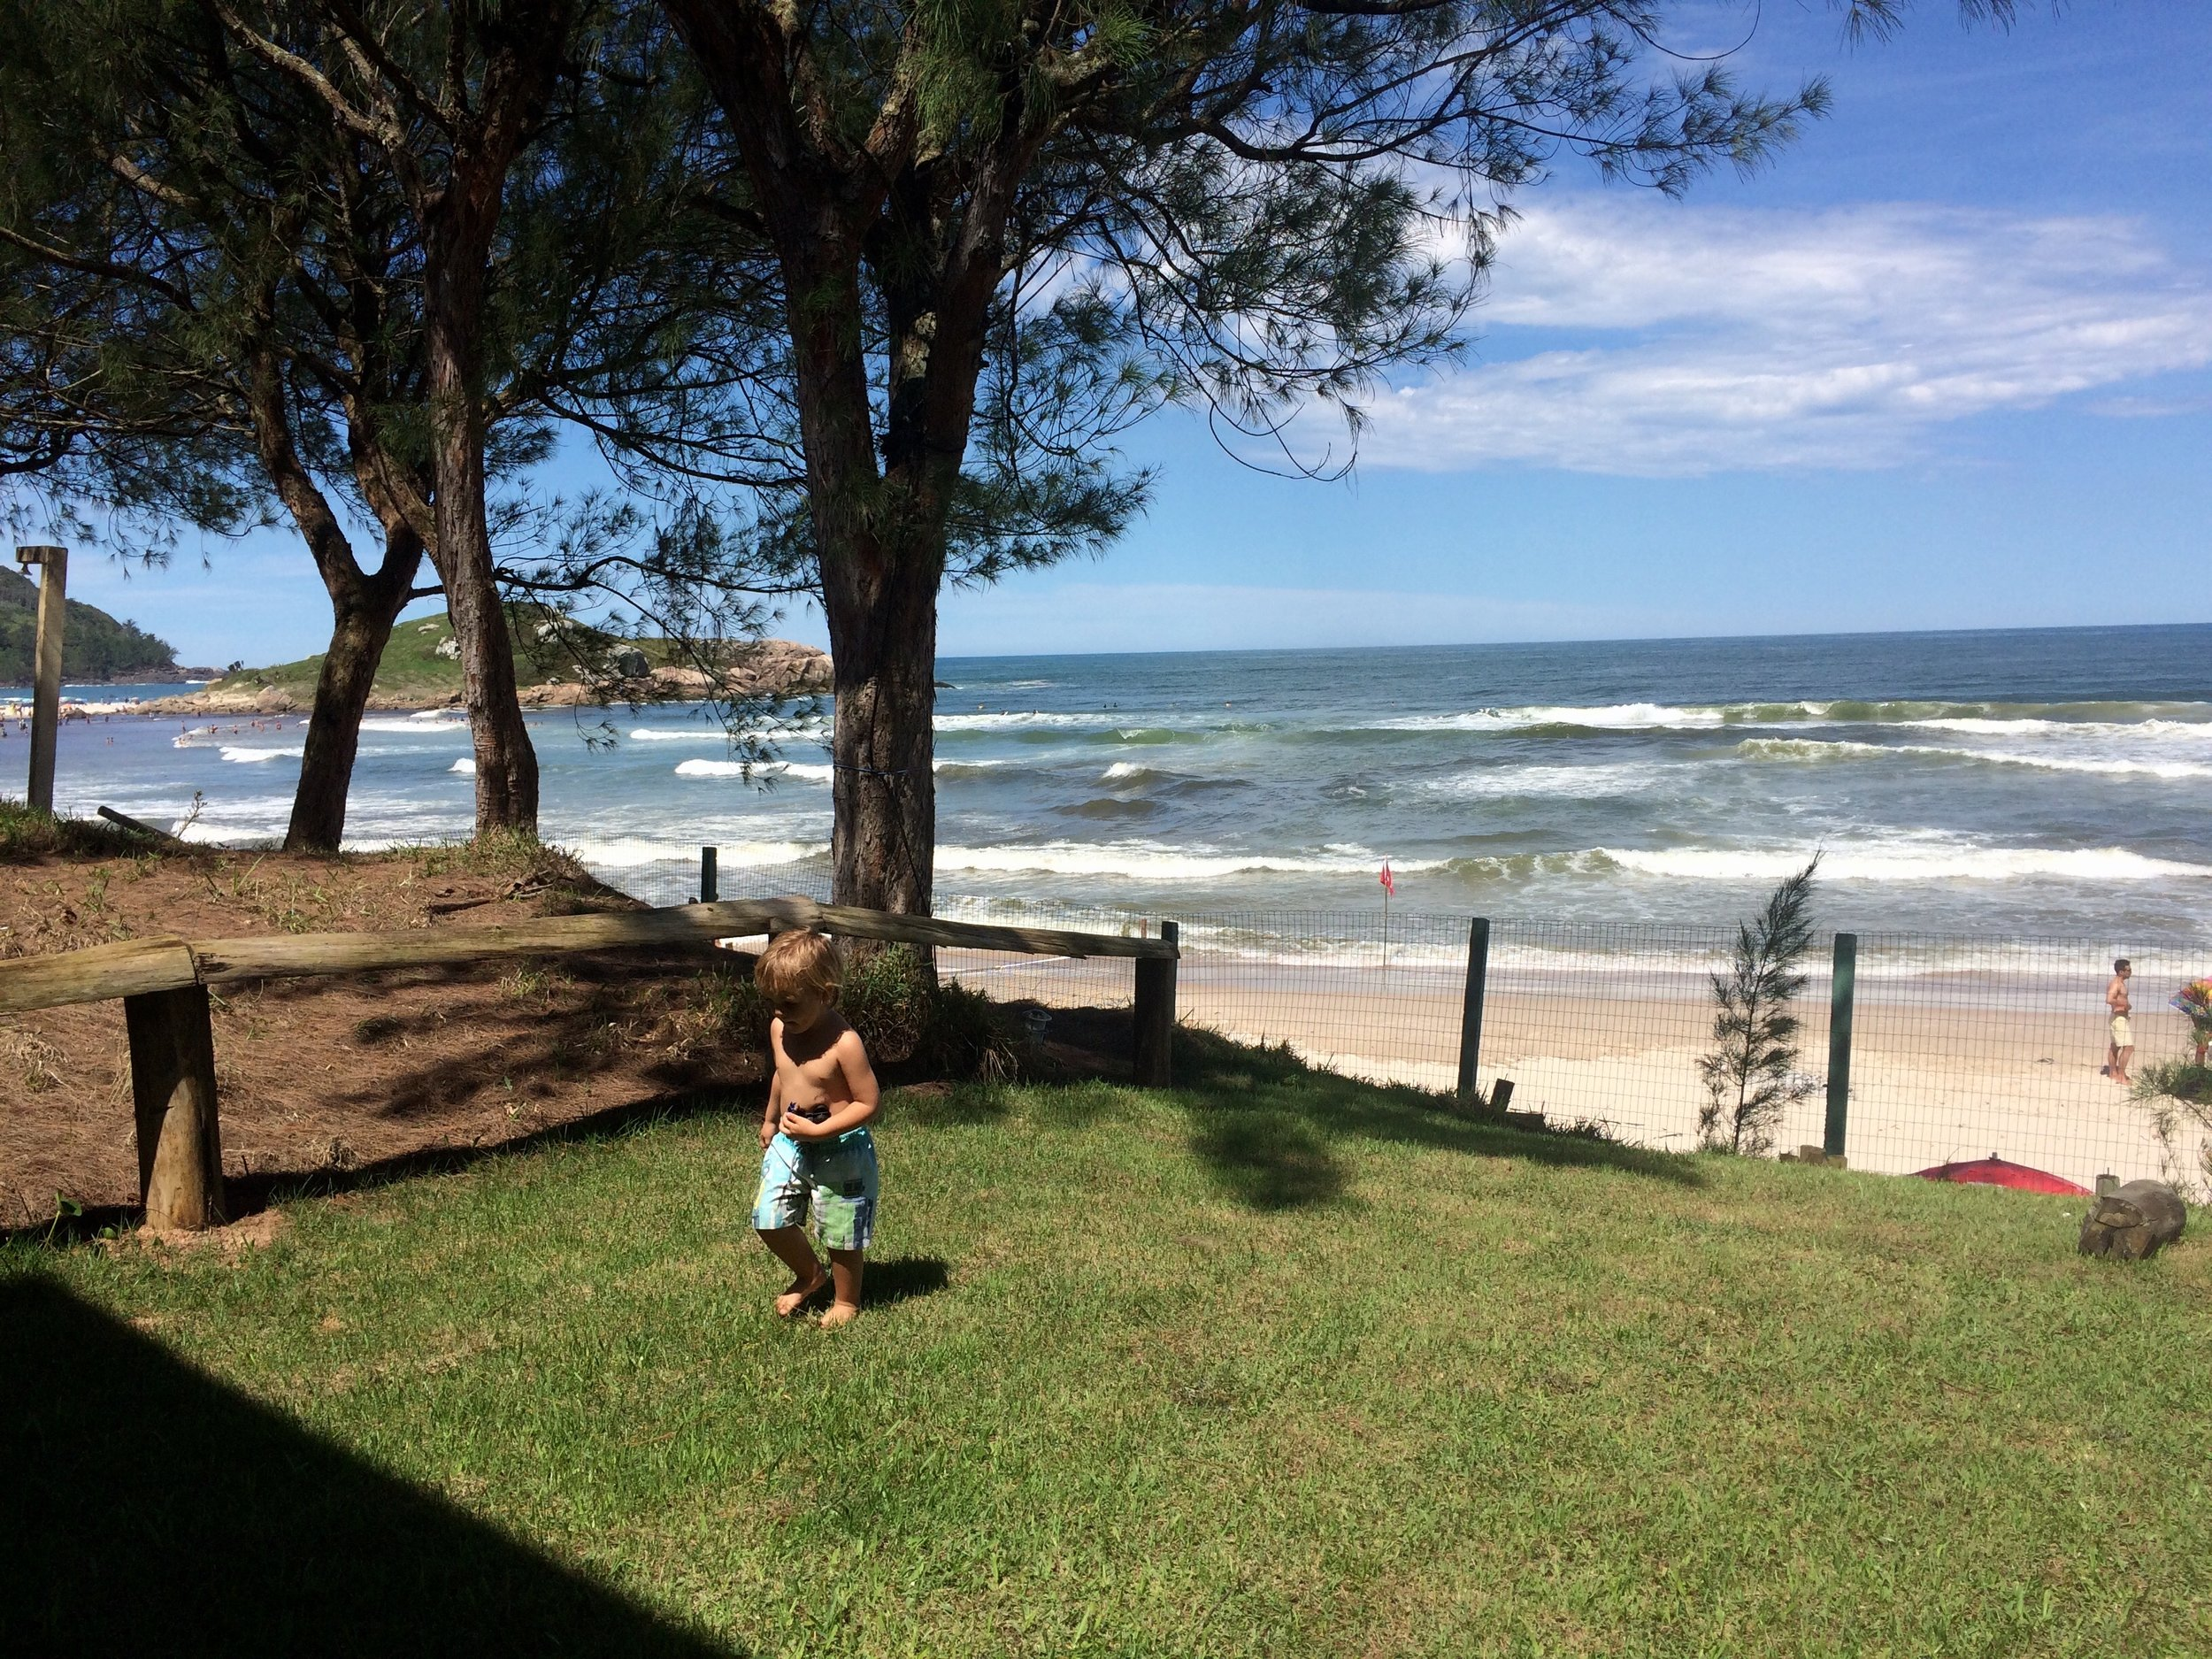 when we went to brazil we had a very nice next door neighbour called Gabrelle i go to her place and she some times go to my place. We have a little apartment on the beach. We go to the beach everyday. The beach is beautiful because it has epic waves and the water is perfect. The beach doesn't get that busy.